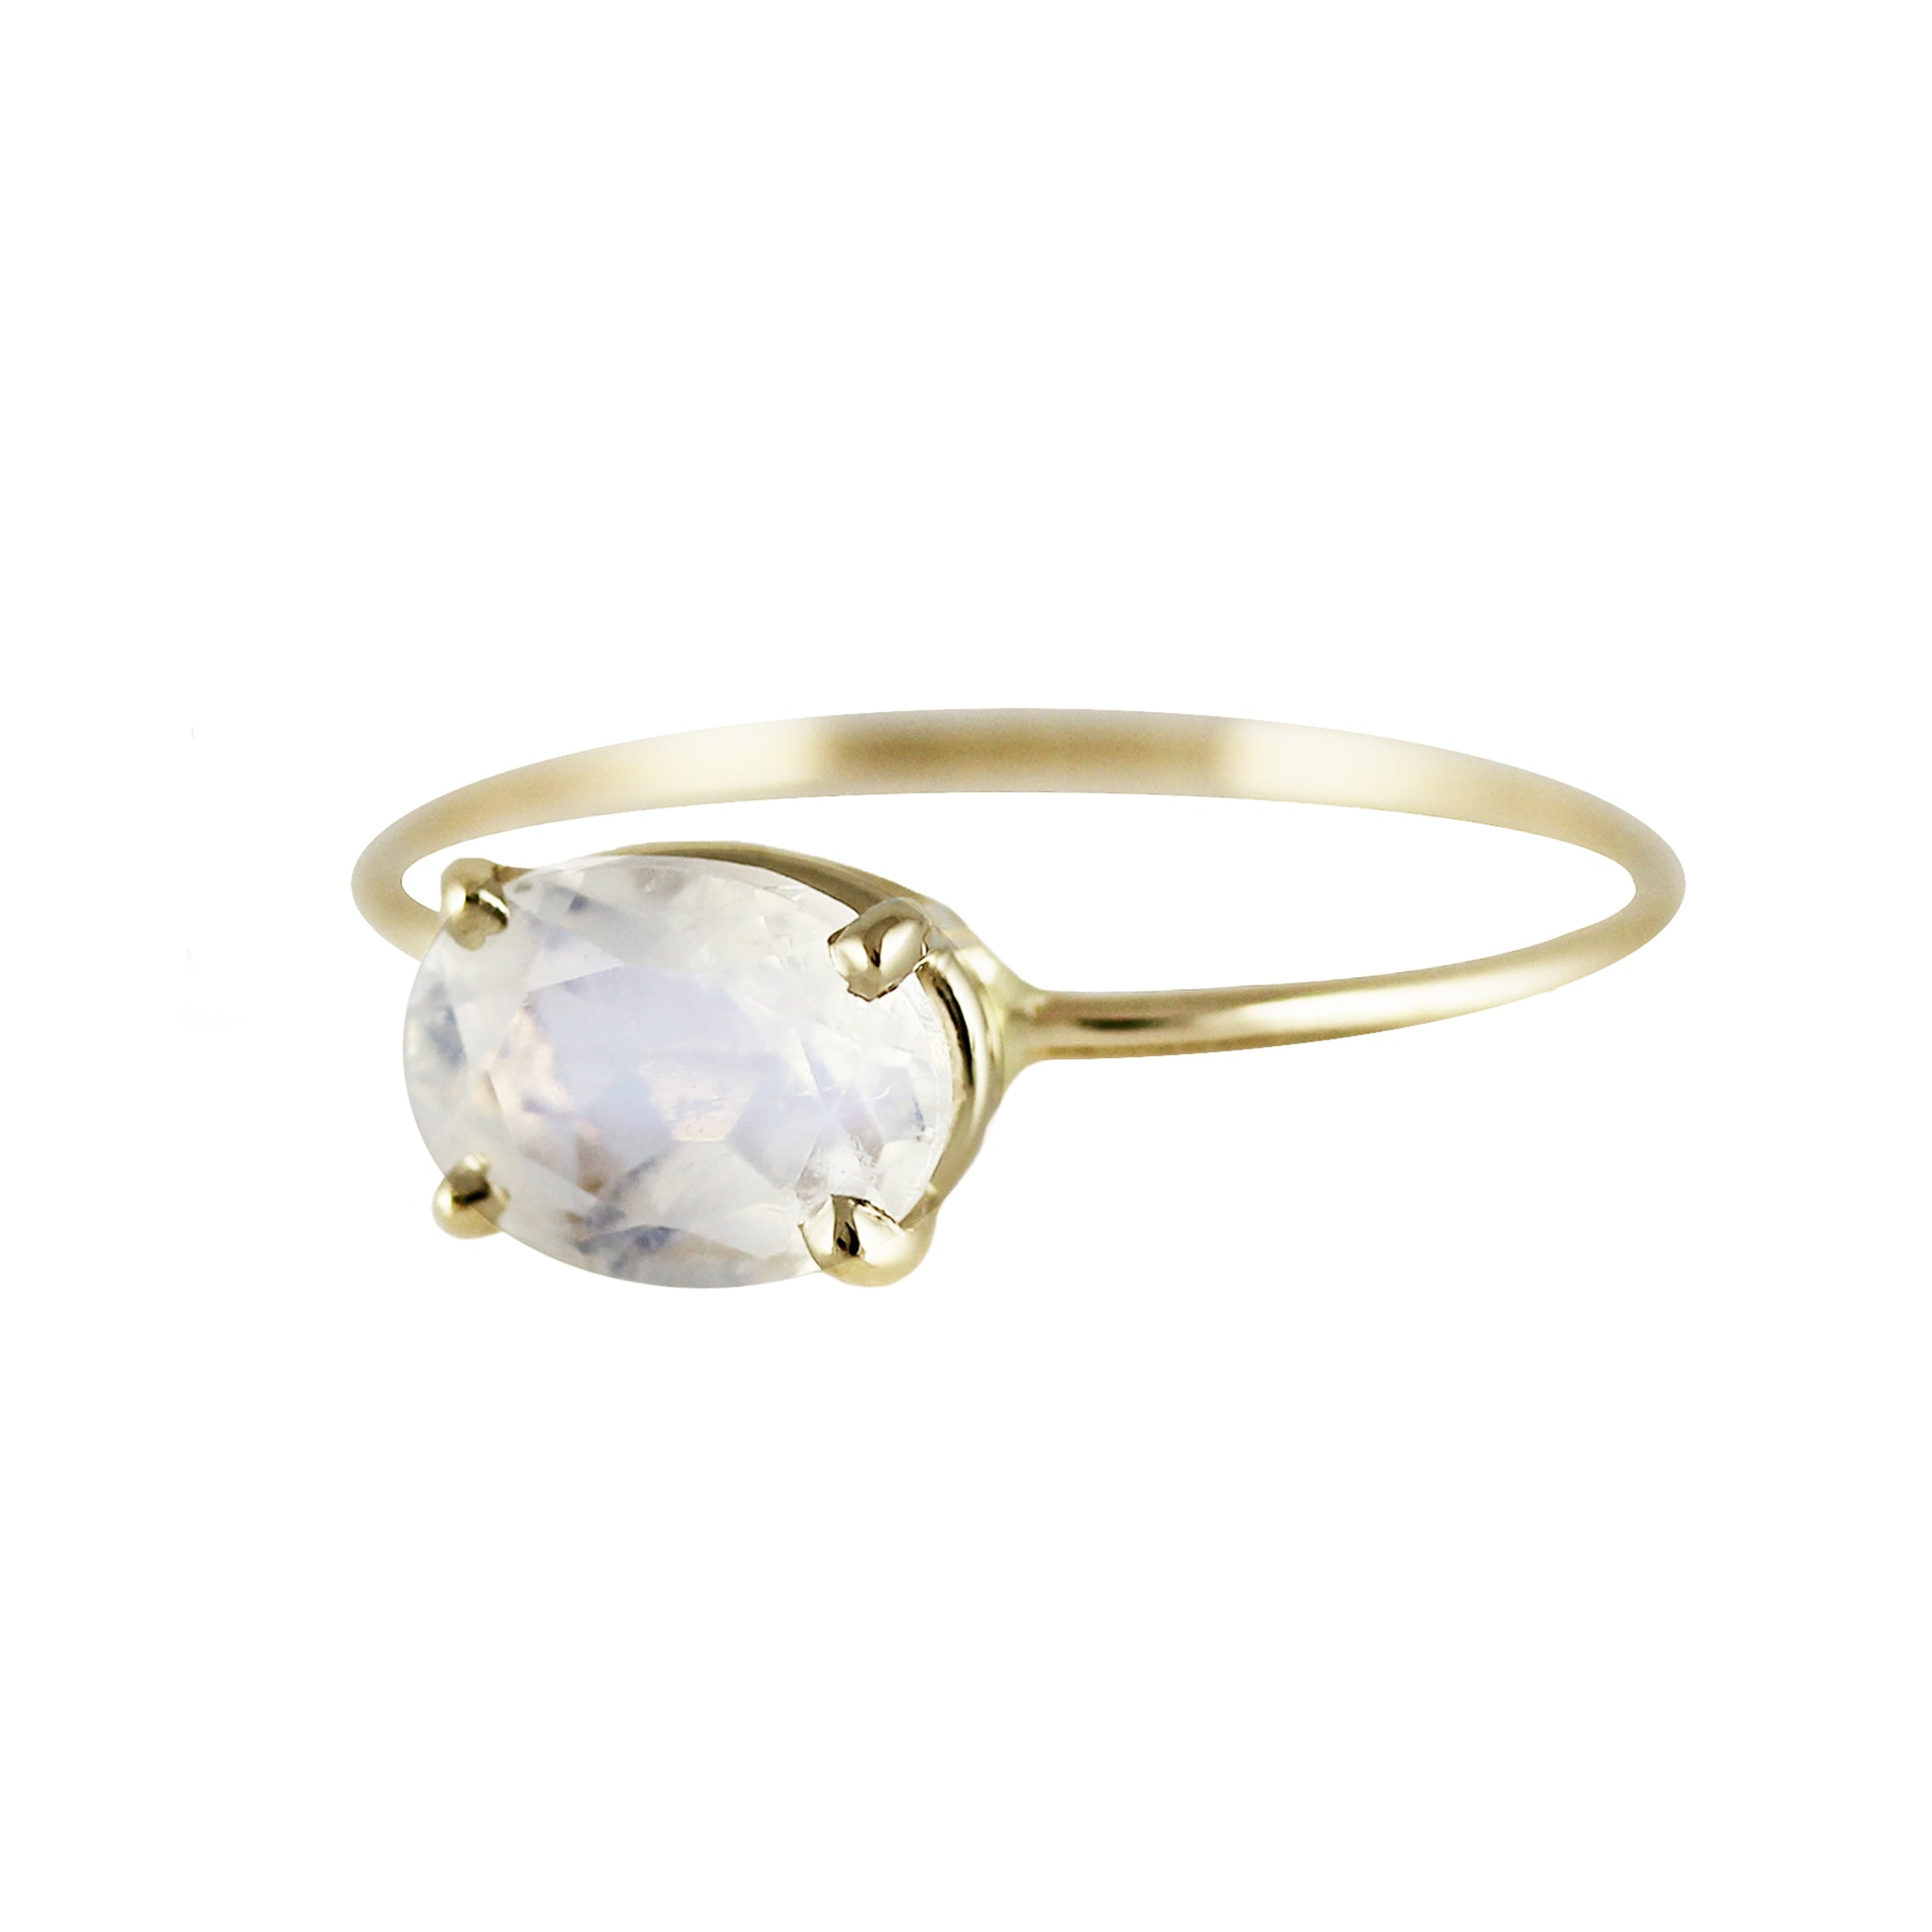 793e925ff0f7d OVAL FACETED RAINBOW MOONSTONE RING